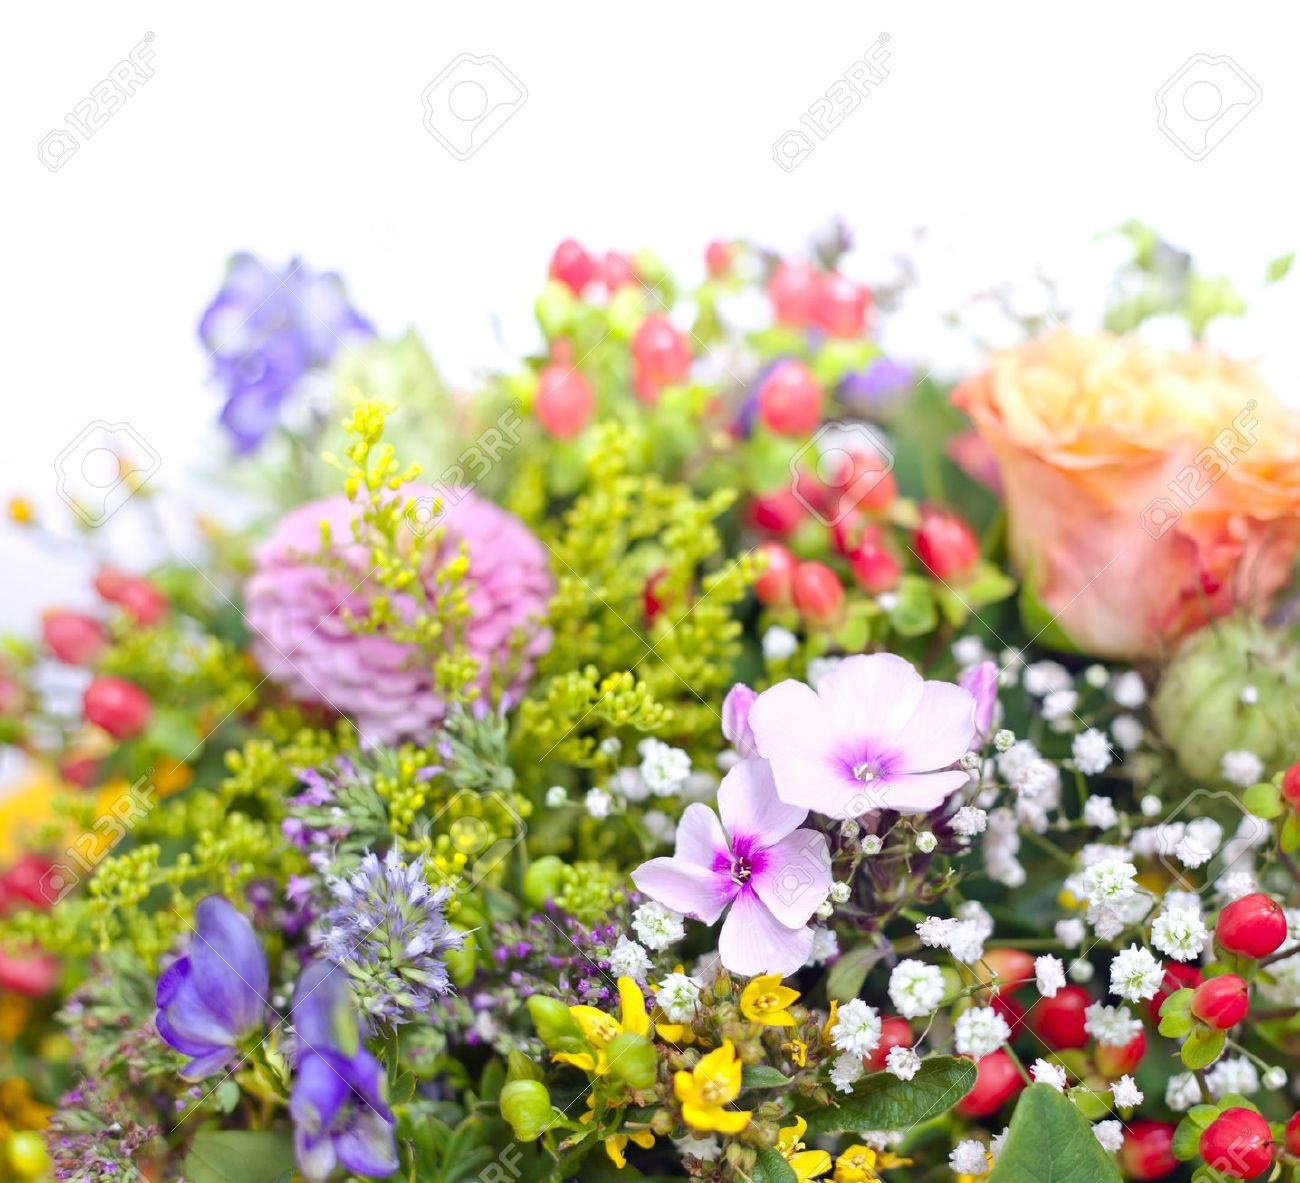 Big flowers stock photos pictures royalty free big flowers big flowers an image of a nice bouquet flowers dhlflorist Gallery